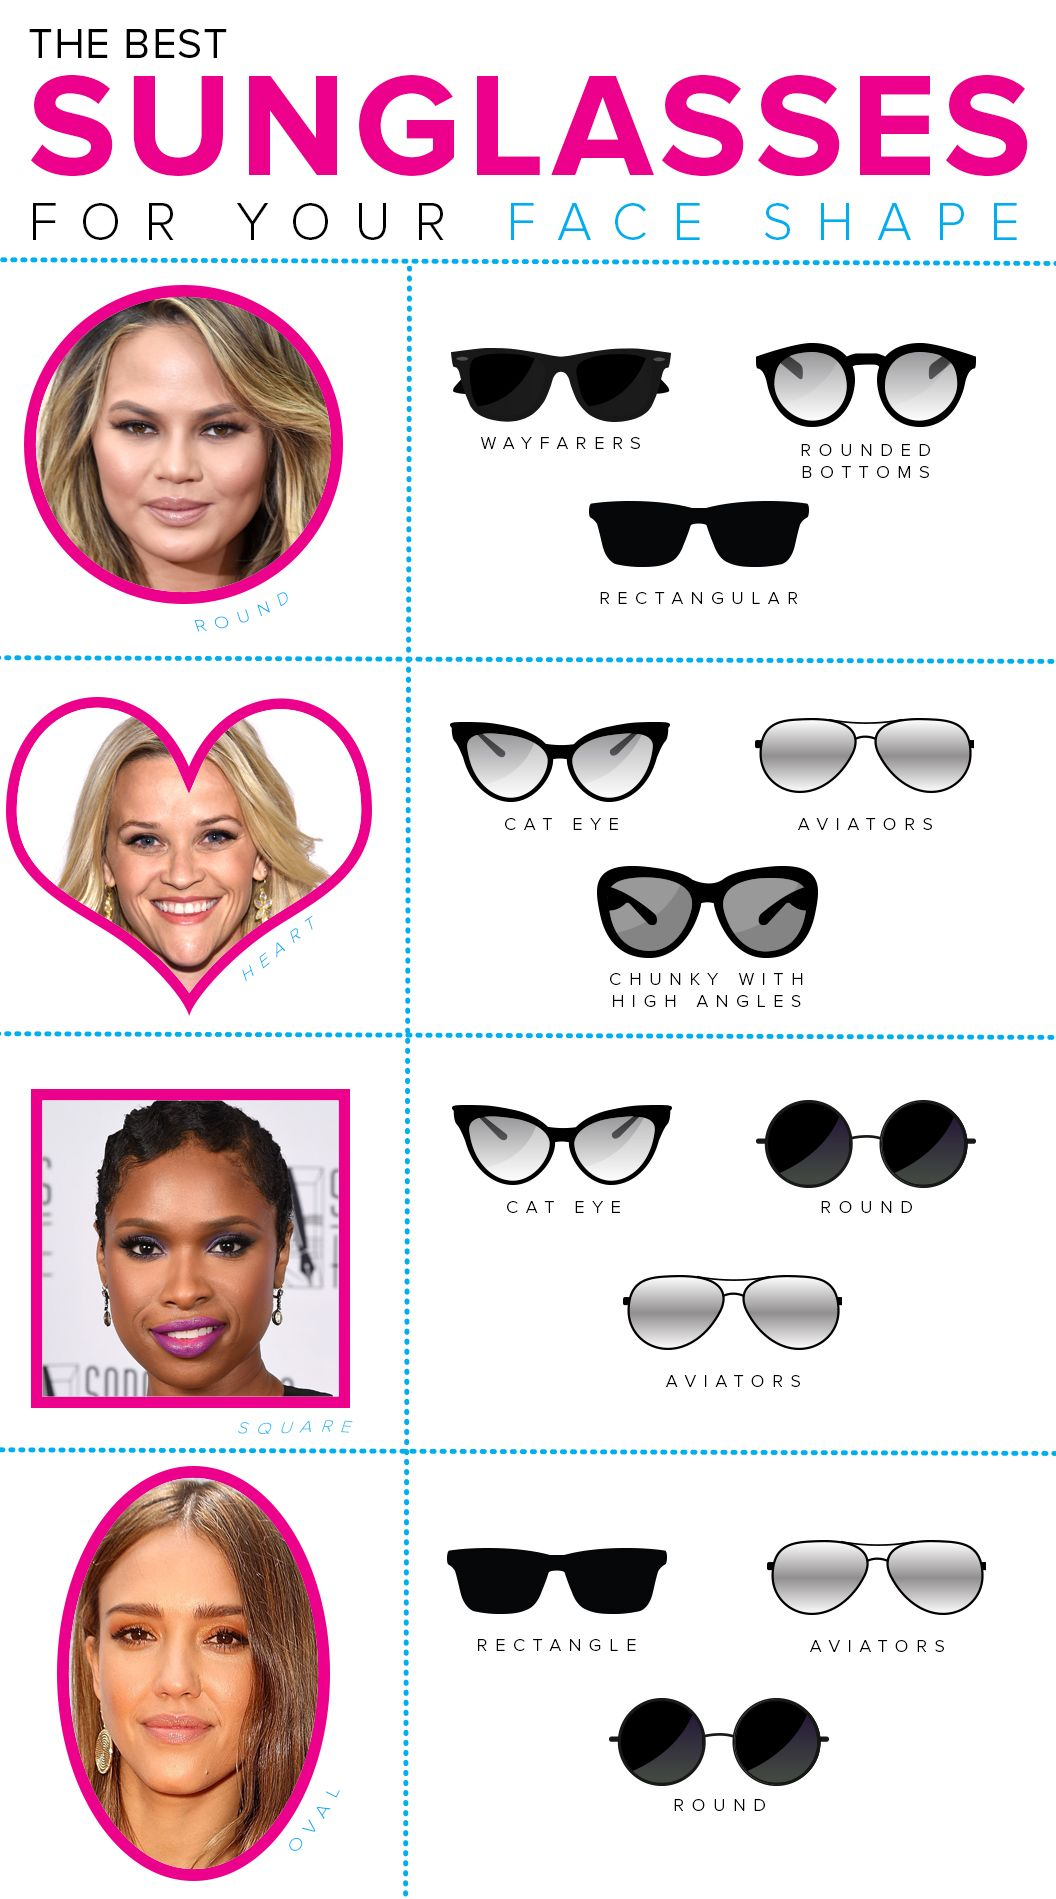 89cbade602 This guide will help you find the best sunglasses for your face shape.  These sunglass styles will fit your face shape. There are tips to help make  the ...